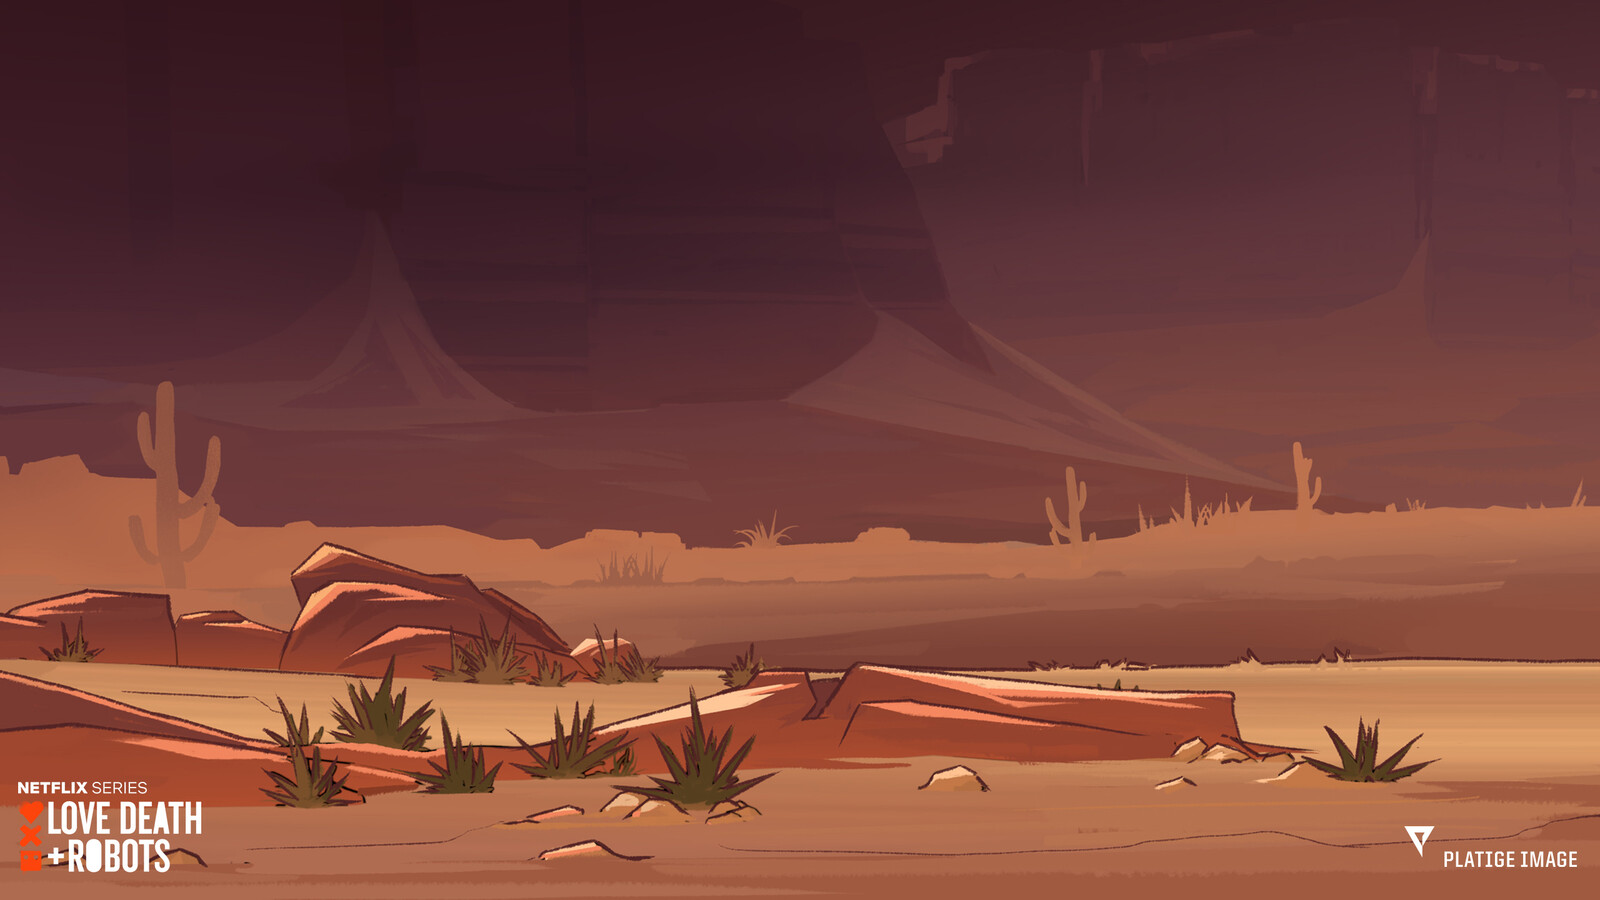 Background painting